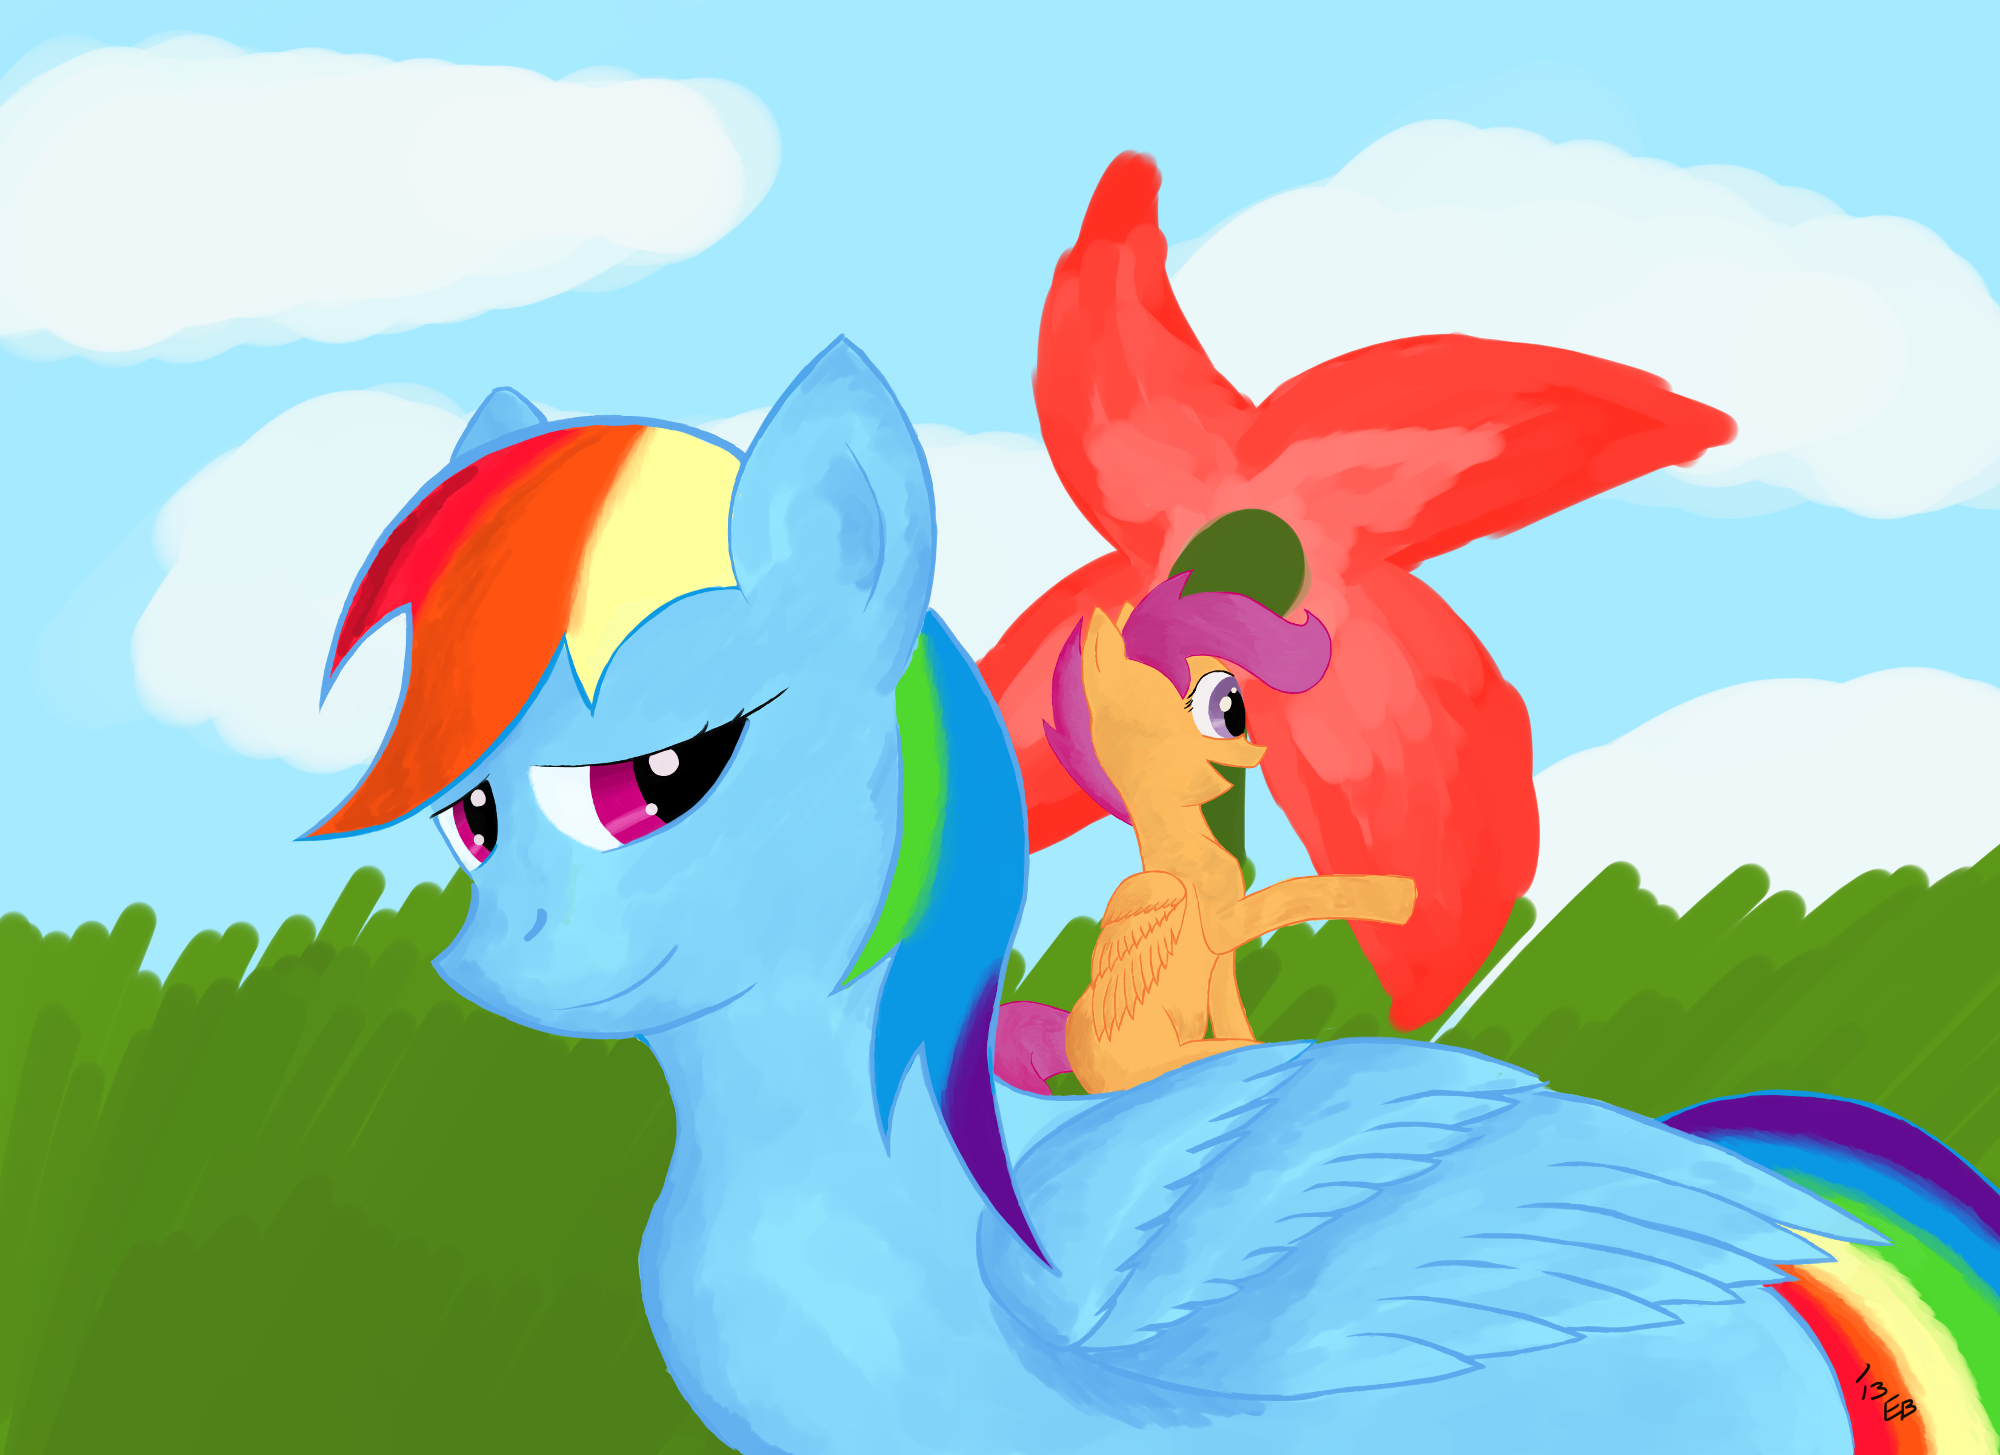 10 Scootaloo from is on drawingnow. 10